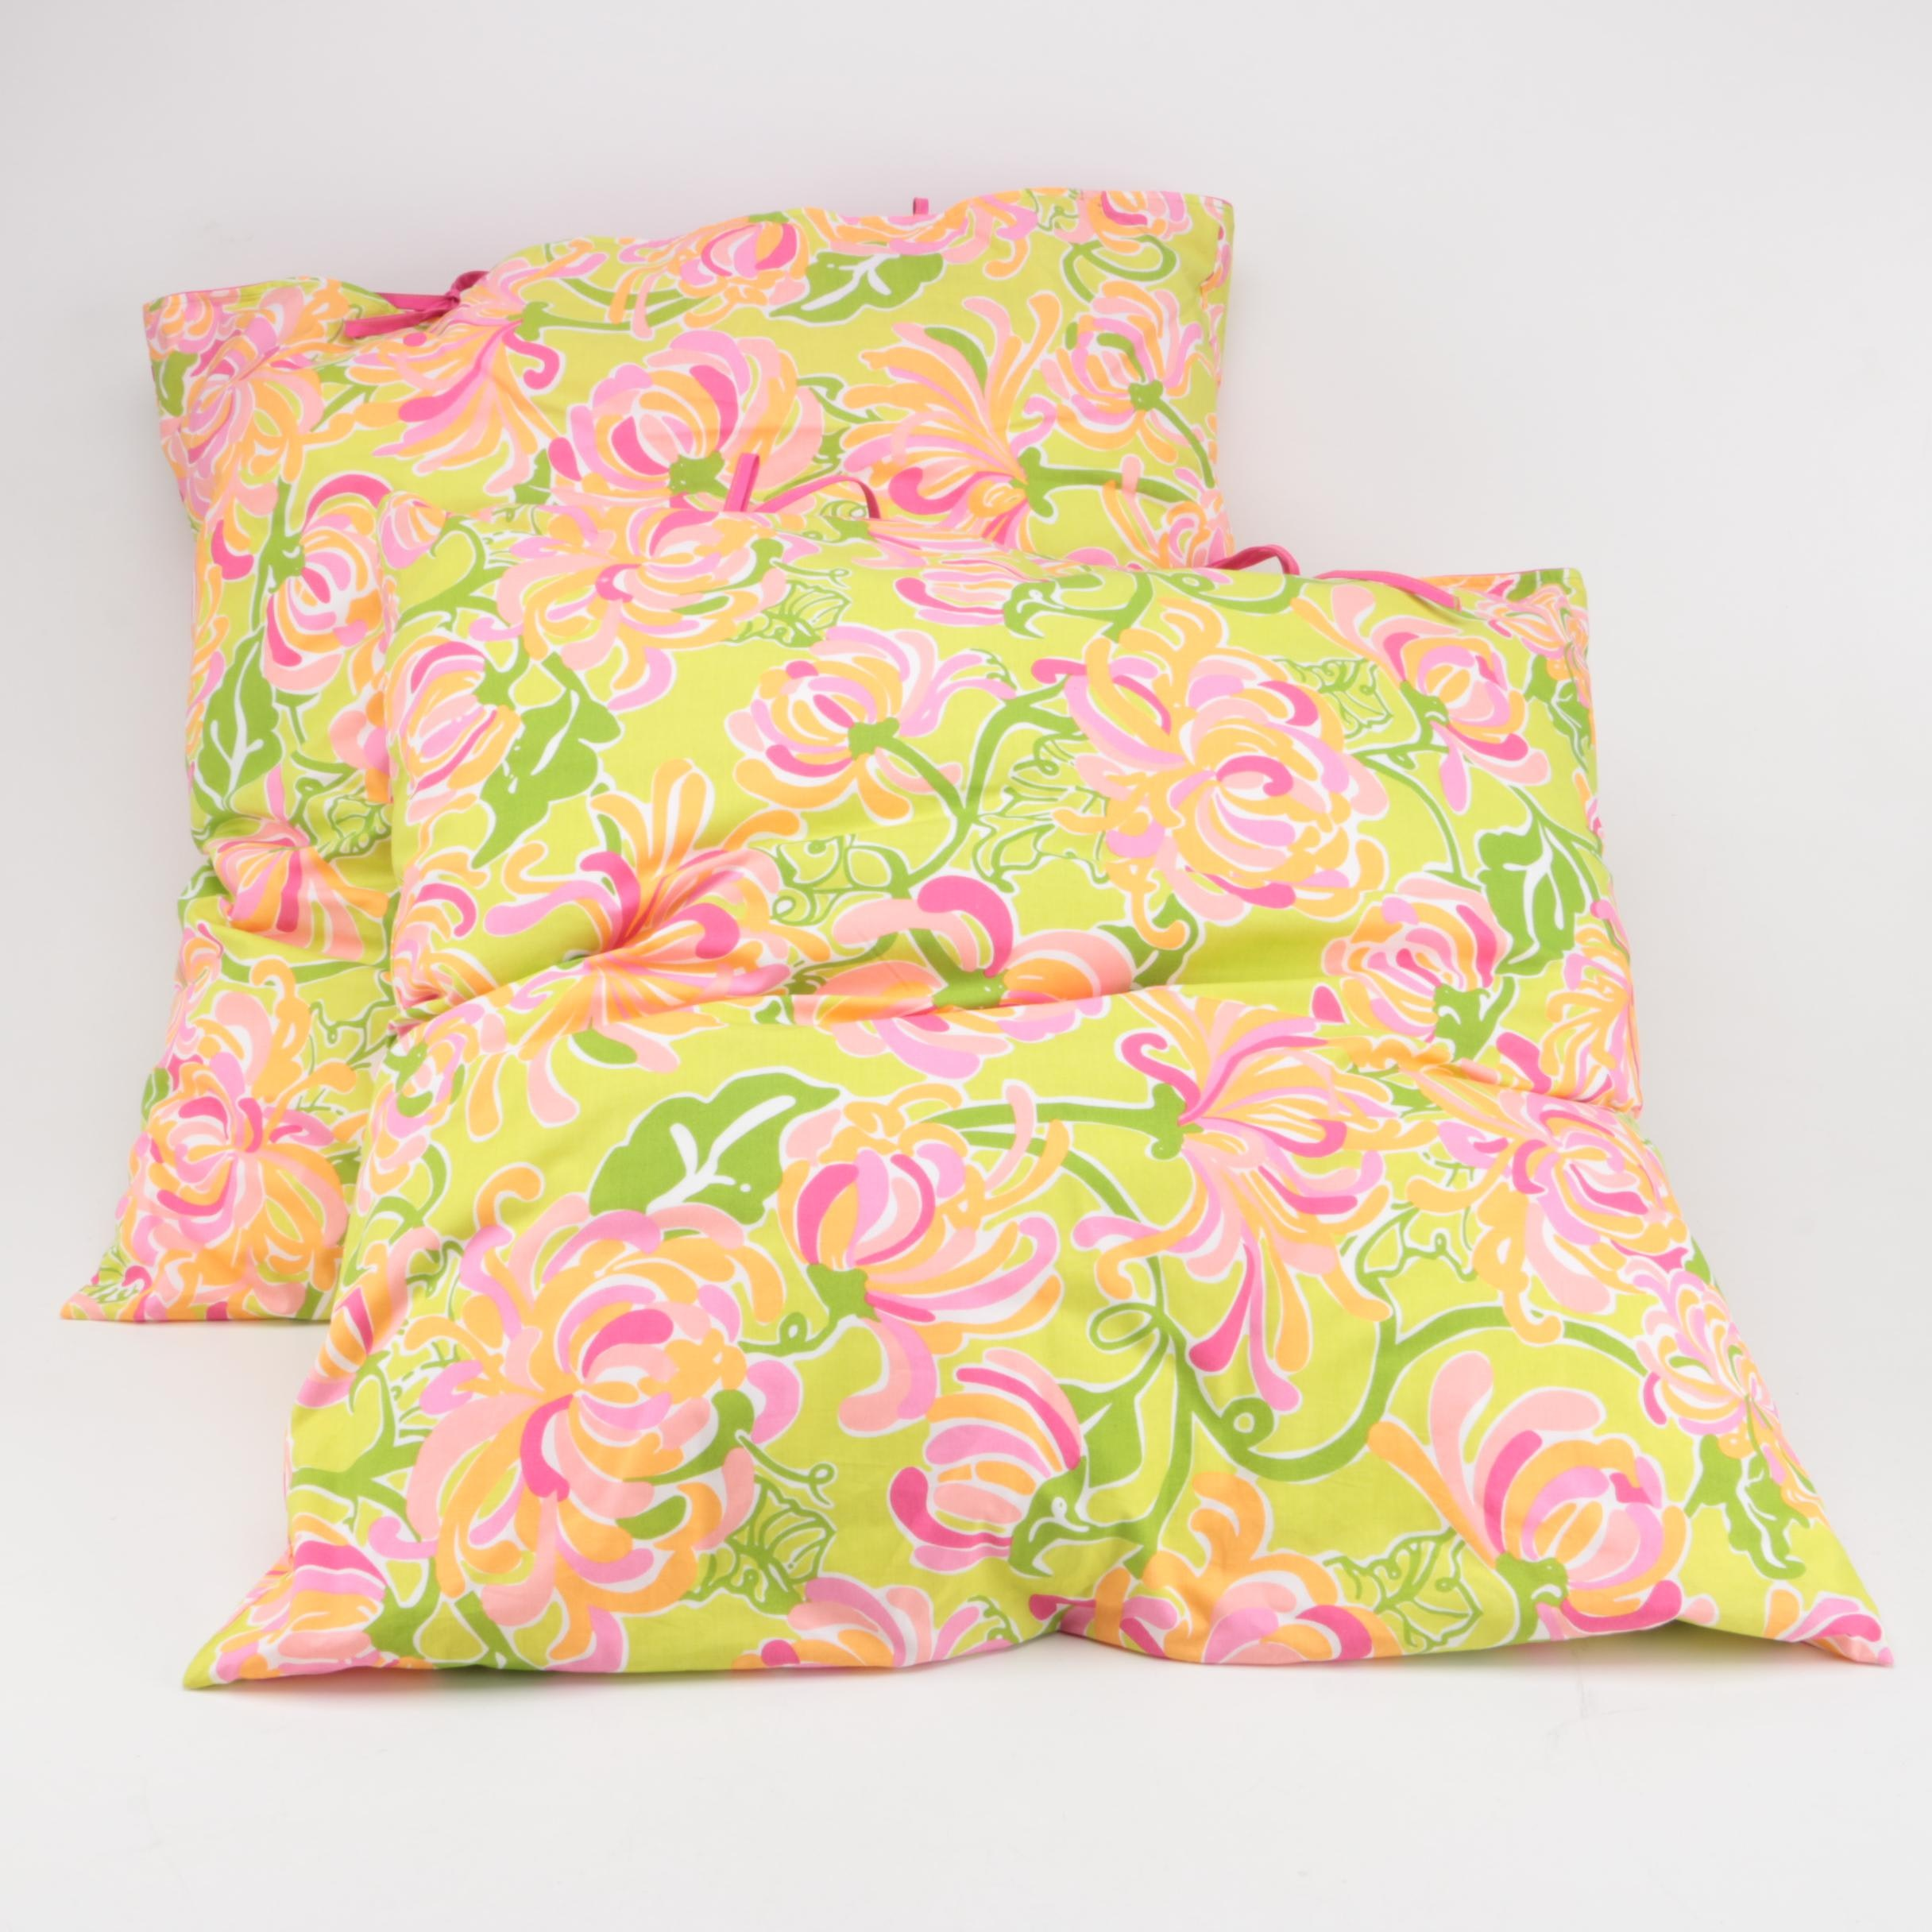 Colorful Floral Floor Pillows